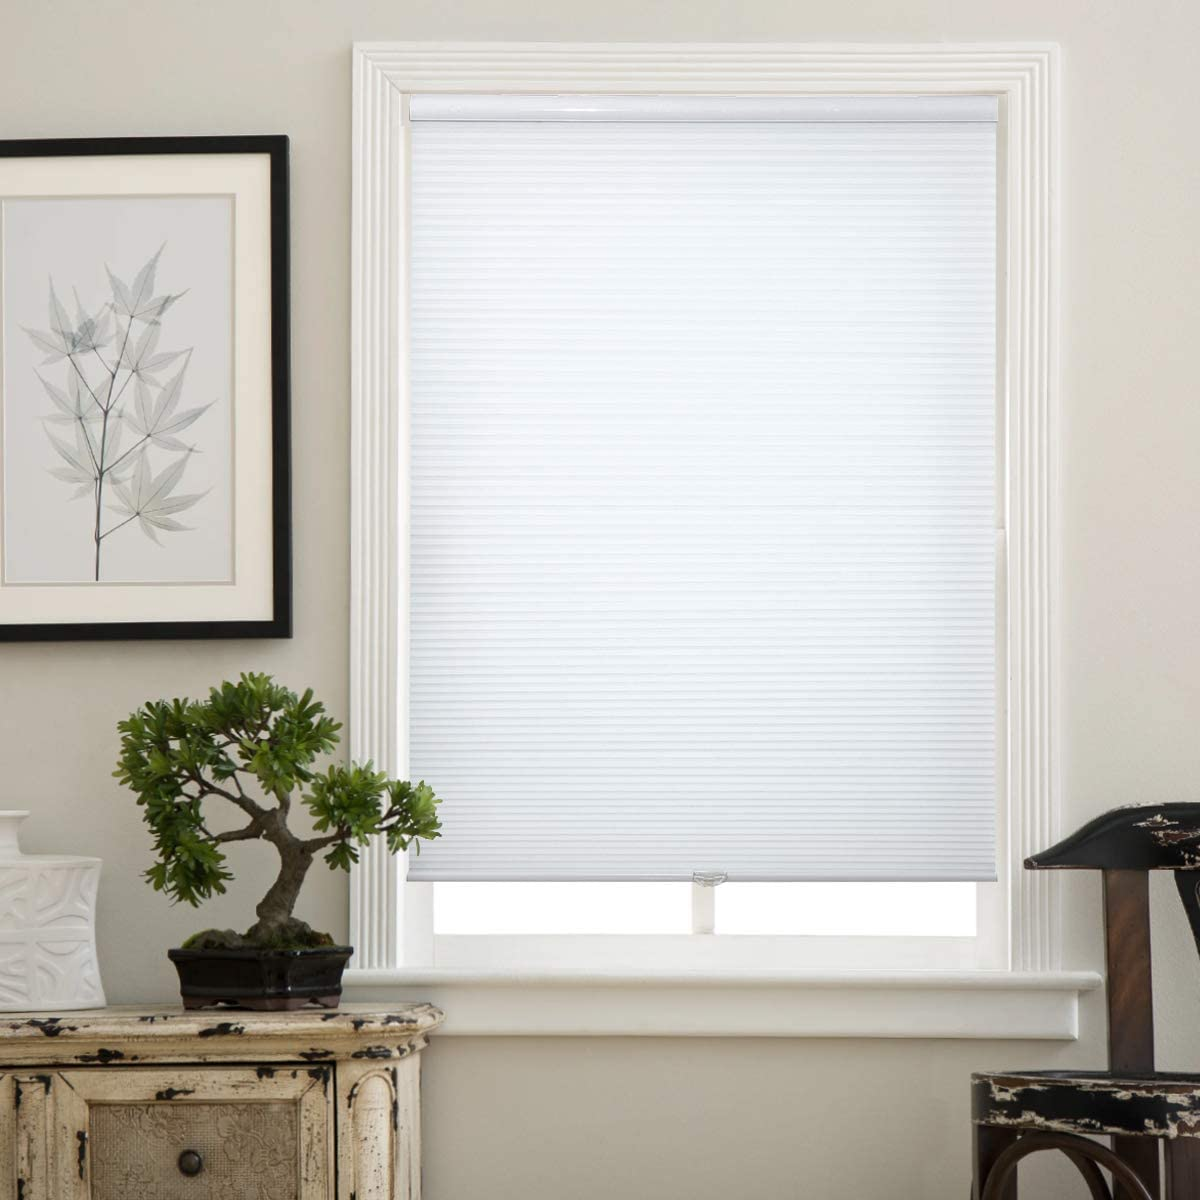 Matinss Cellular Max 55% OFF Limited price sale Shades Cordless Honeycomb Blinds Window